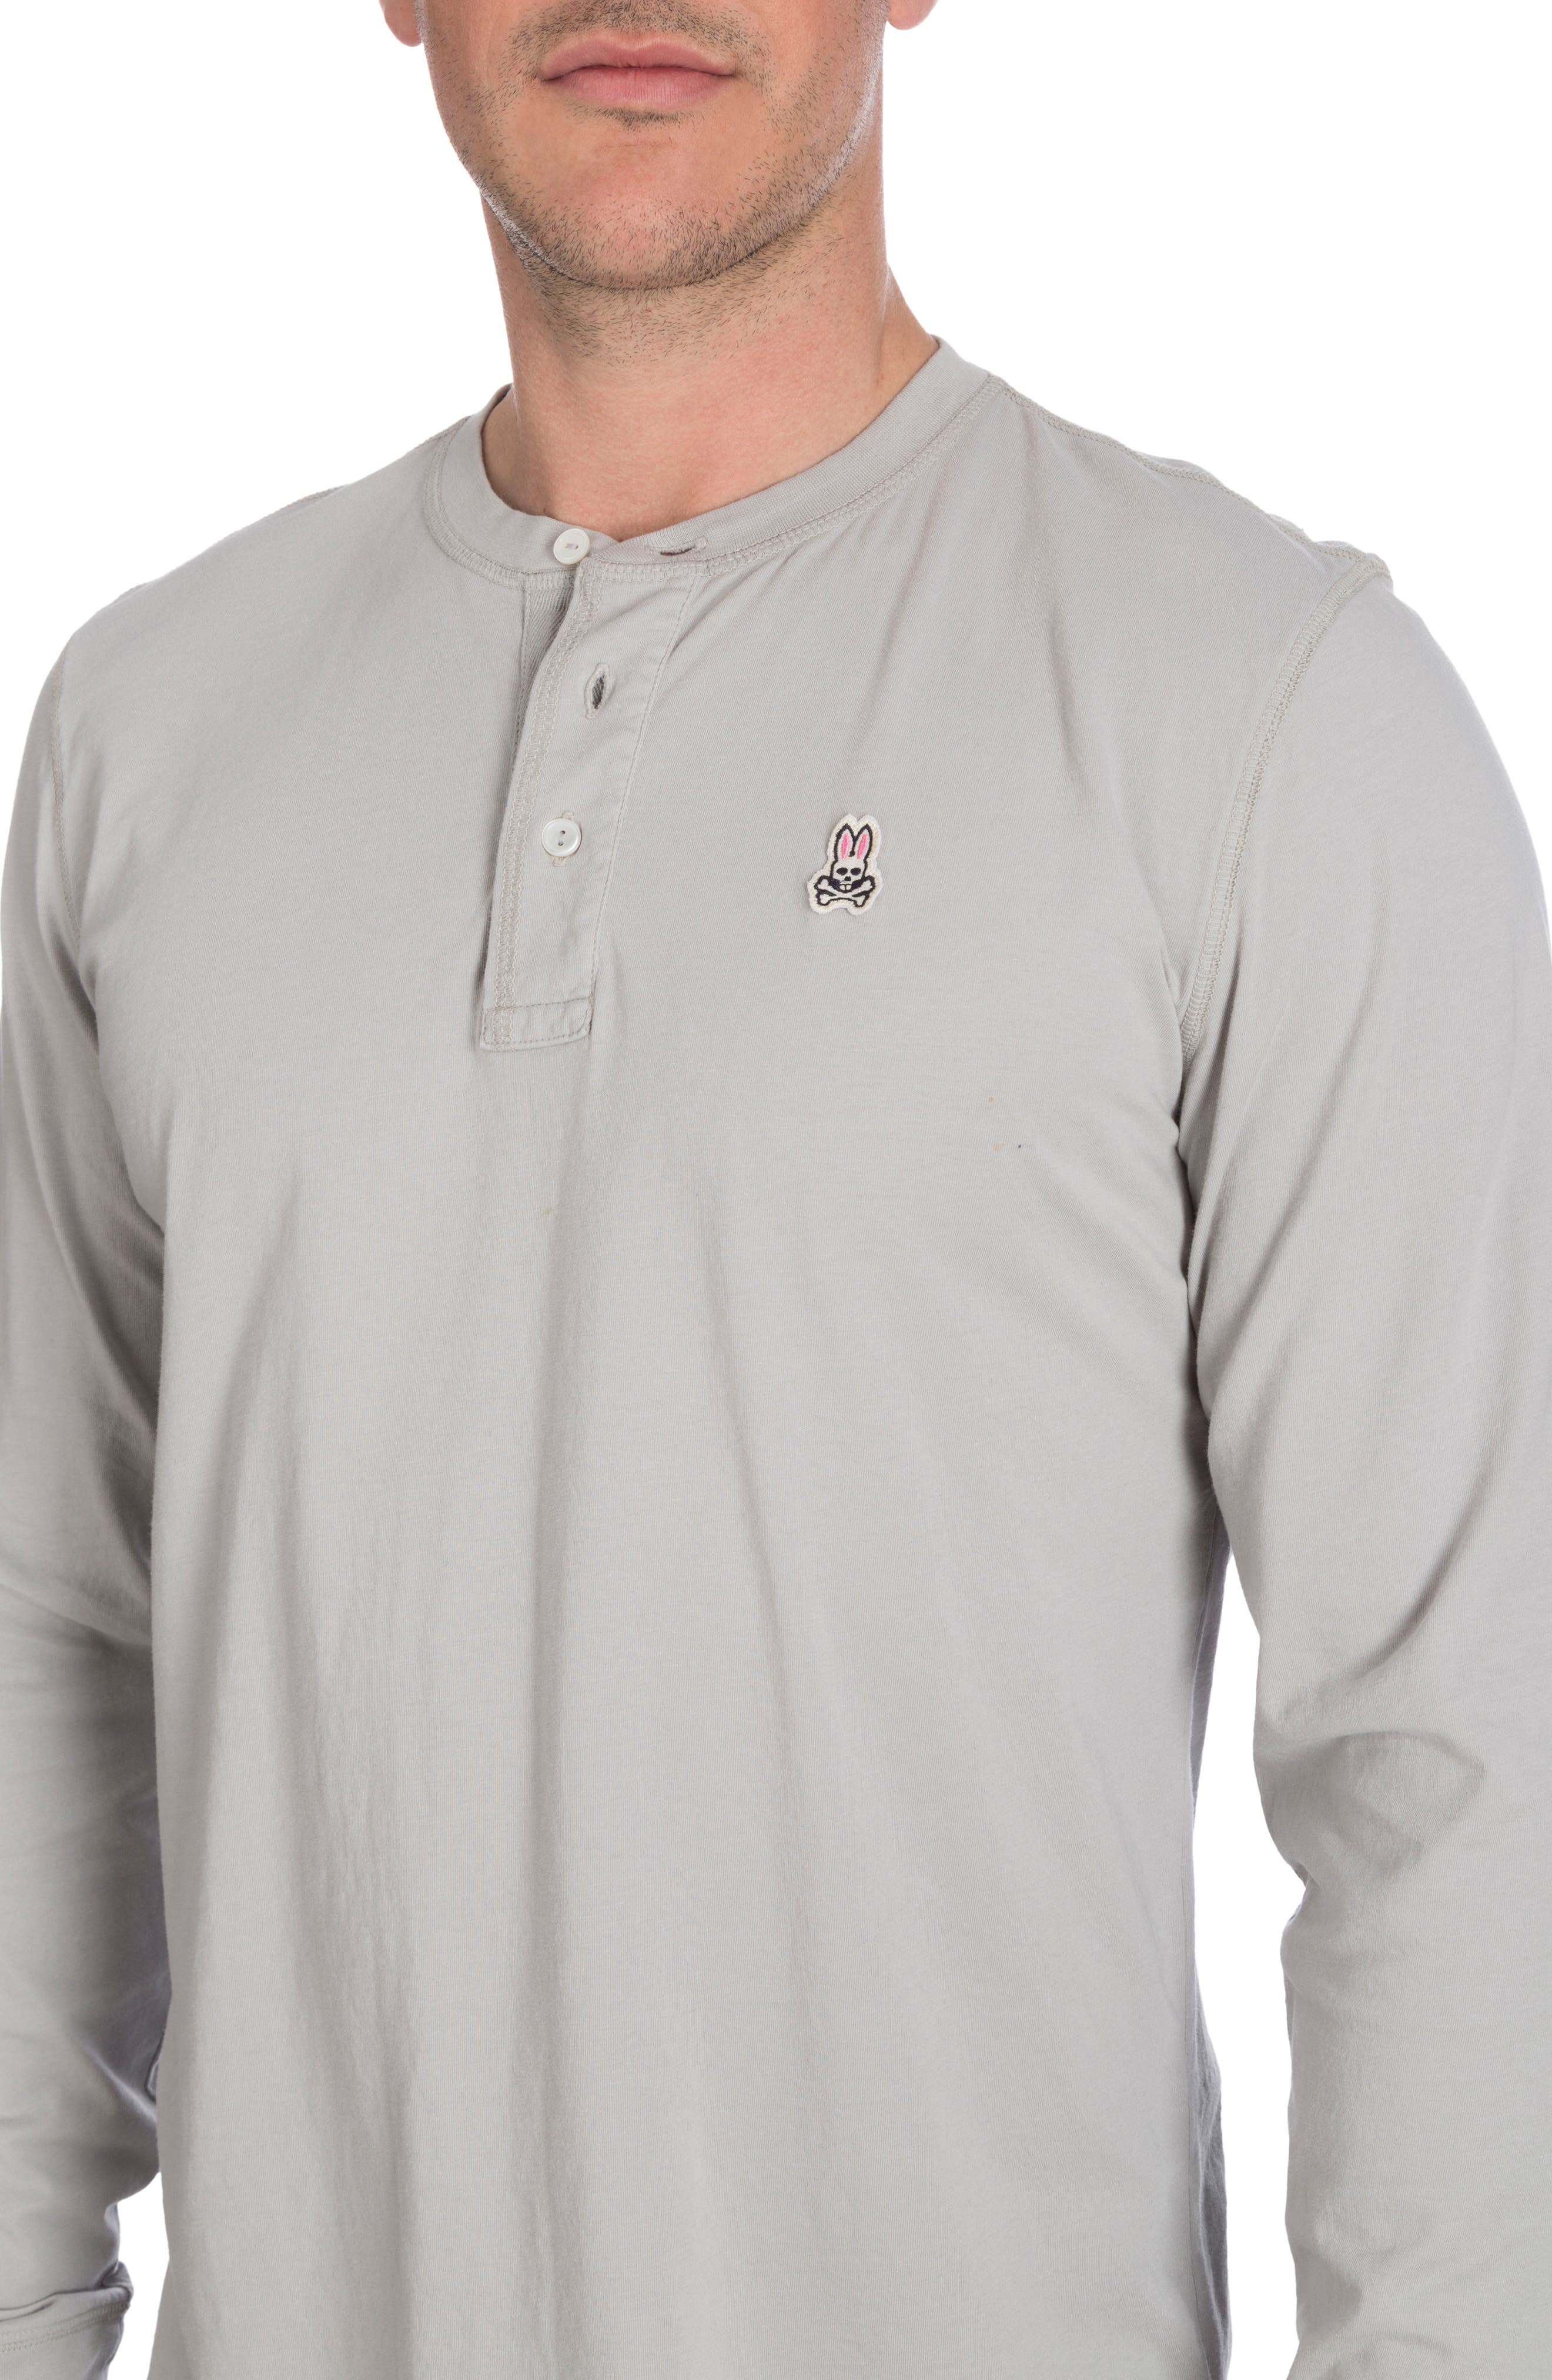 Biltmore Henley T-Shirt,                             Alternate thumbnail 3, color,                             050